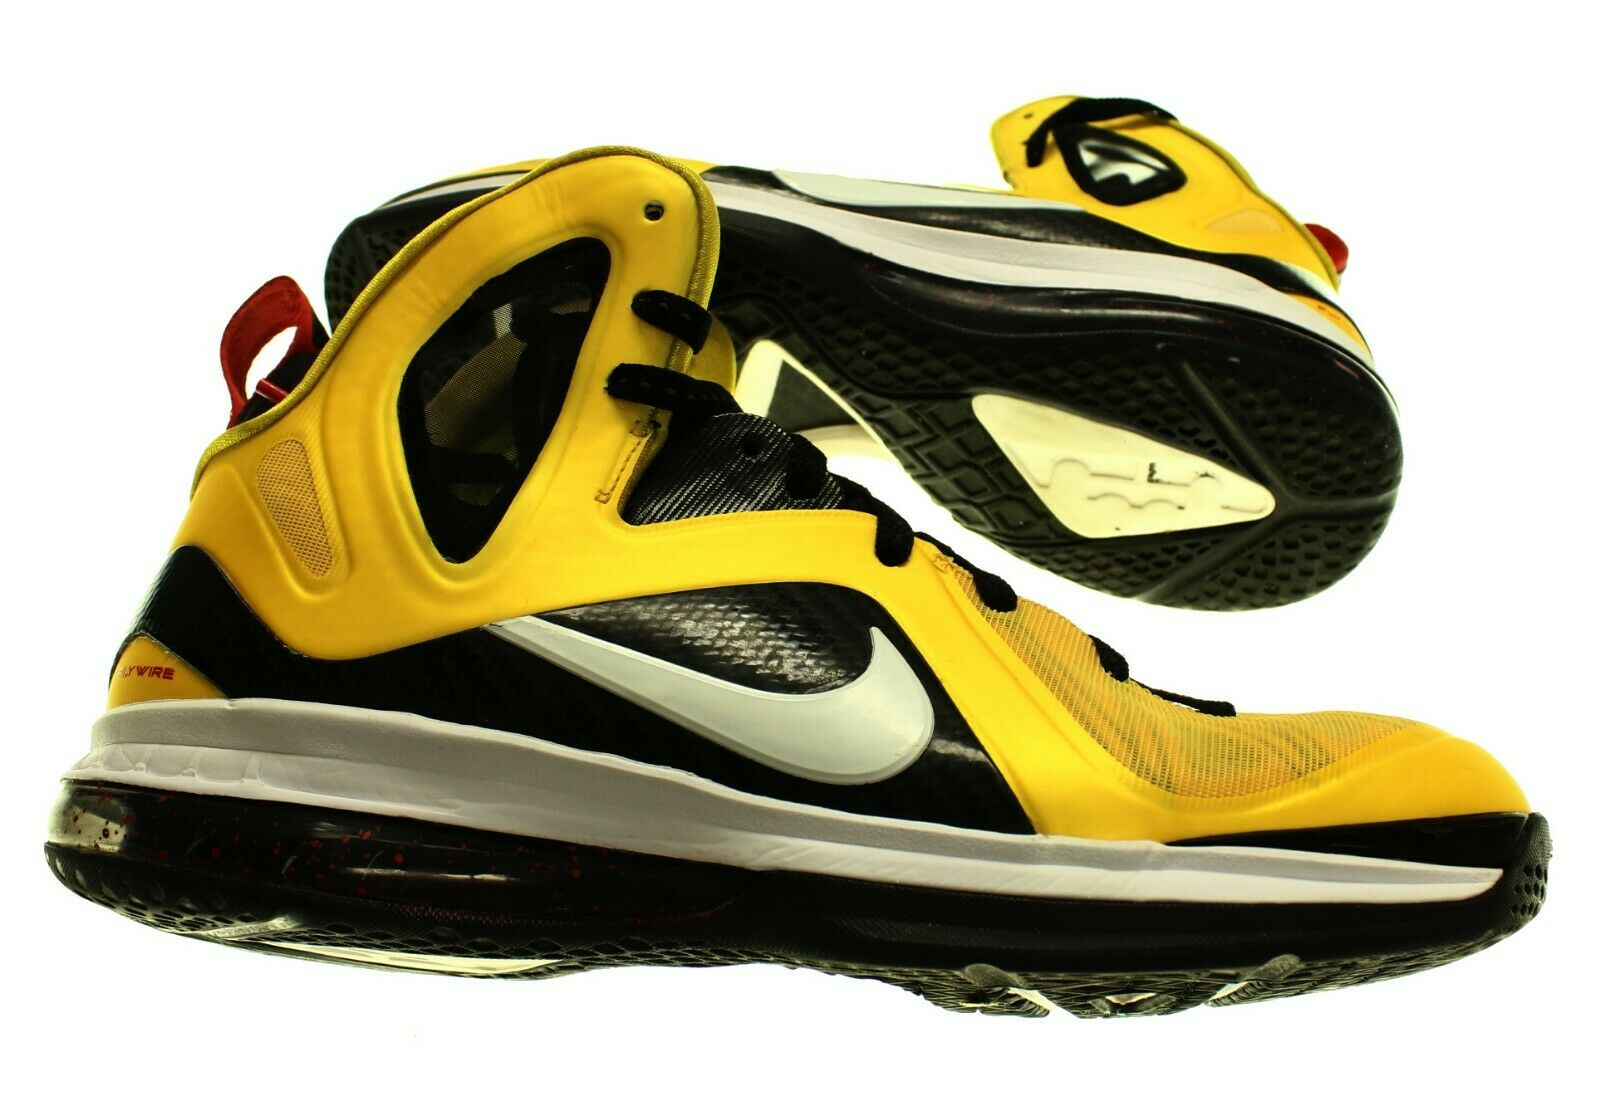 NIKE Men's LEBRON 9 P.S. ELITE Yellow Black White BASKETBALL SHOE - US 10.5